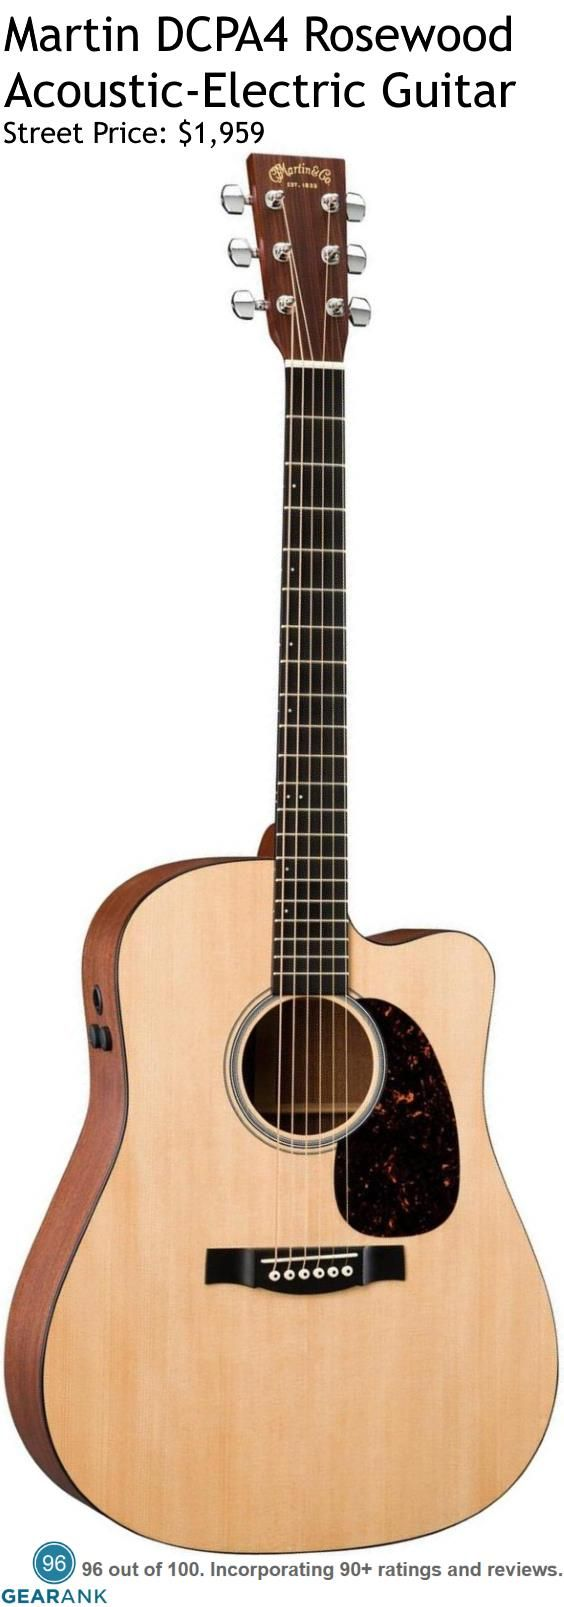 "Martin DCPA4 Rosewood Acoustic-Electric Guitar. Specifications: Top: Solid Sitka Spruce - Body: Solid East Indian Rosewood back & sides - Finish: Gloss - Natural - Bridge: Richlite - Neck: Select Hardwood - Fingerboard: Richlite Fingerboard Radius: 16"" - Scale Length: 25.4"" - Nut Width: 1.75"" - Nut: White Corian - Saddle: Compensated White Tusq - Electronics: Fishman F1 Analog preamp & pickup. For a Detailed Guide to the Best Acoustic Guitars see…"